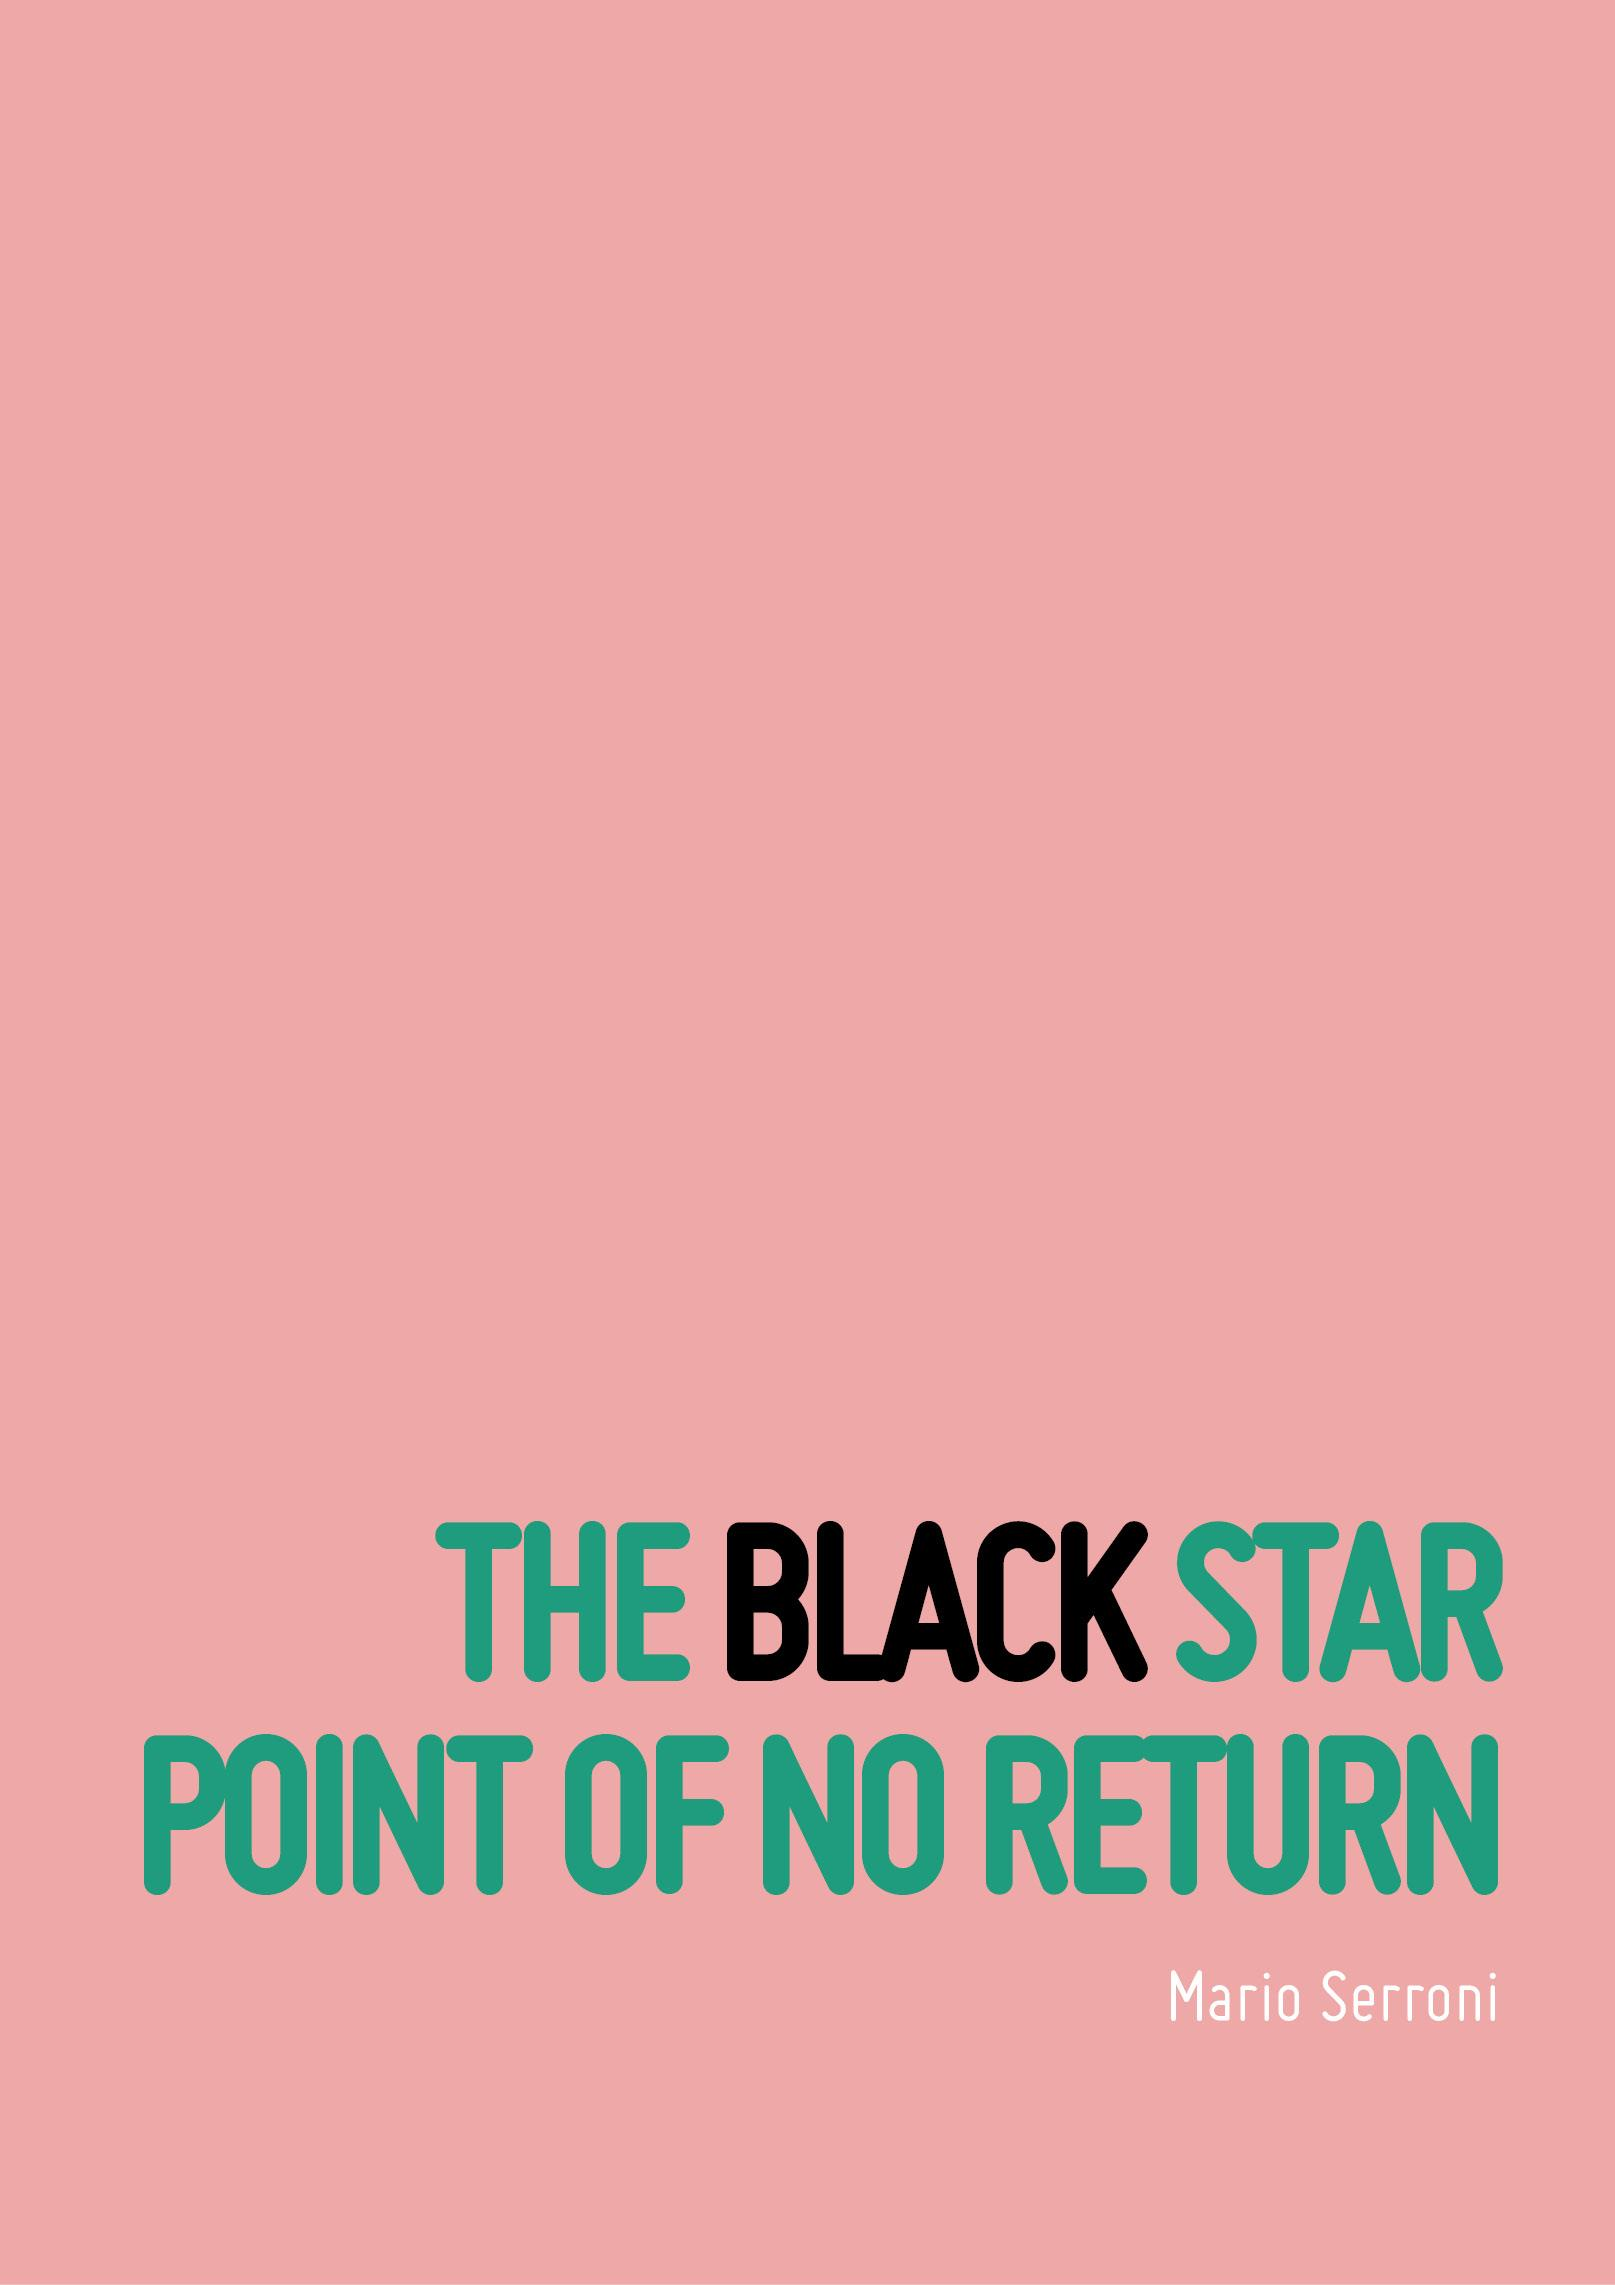 The Black Star Point of No Return